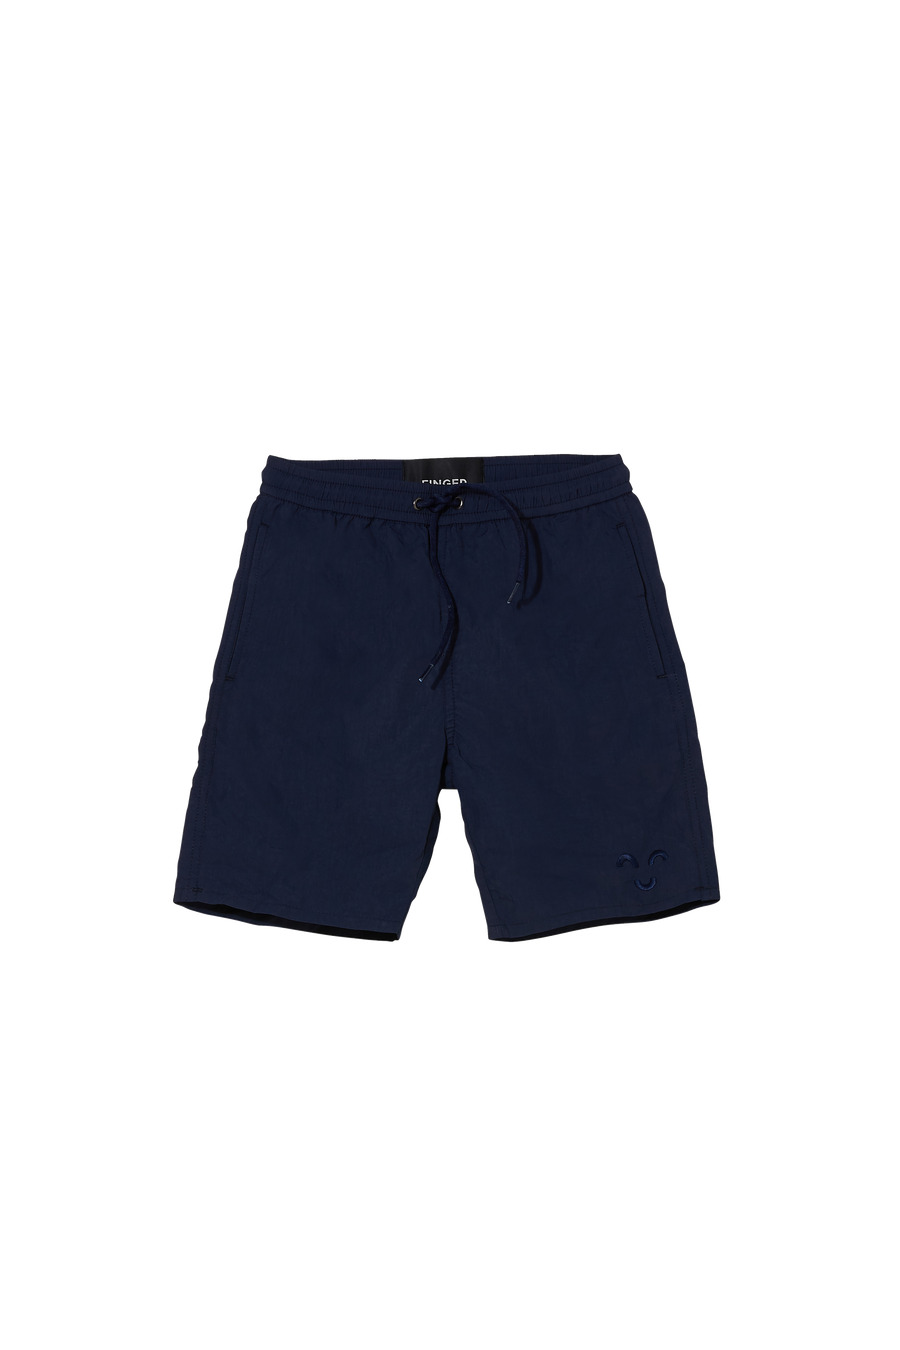 GOODBOY Navy - Surf Bermuda Shorts